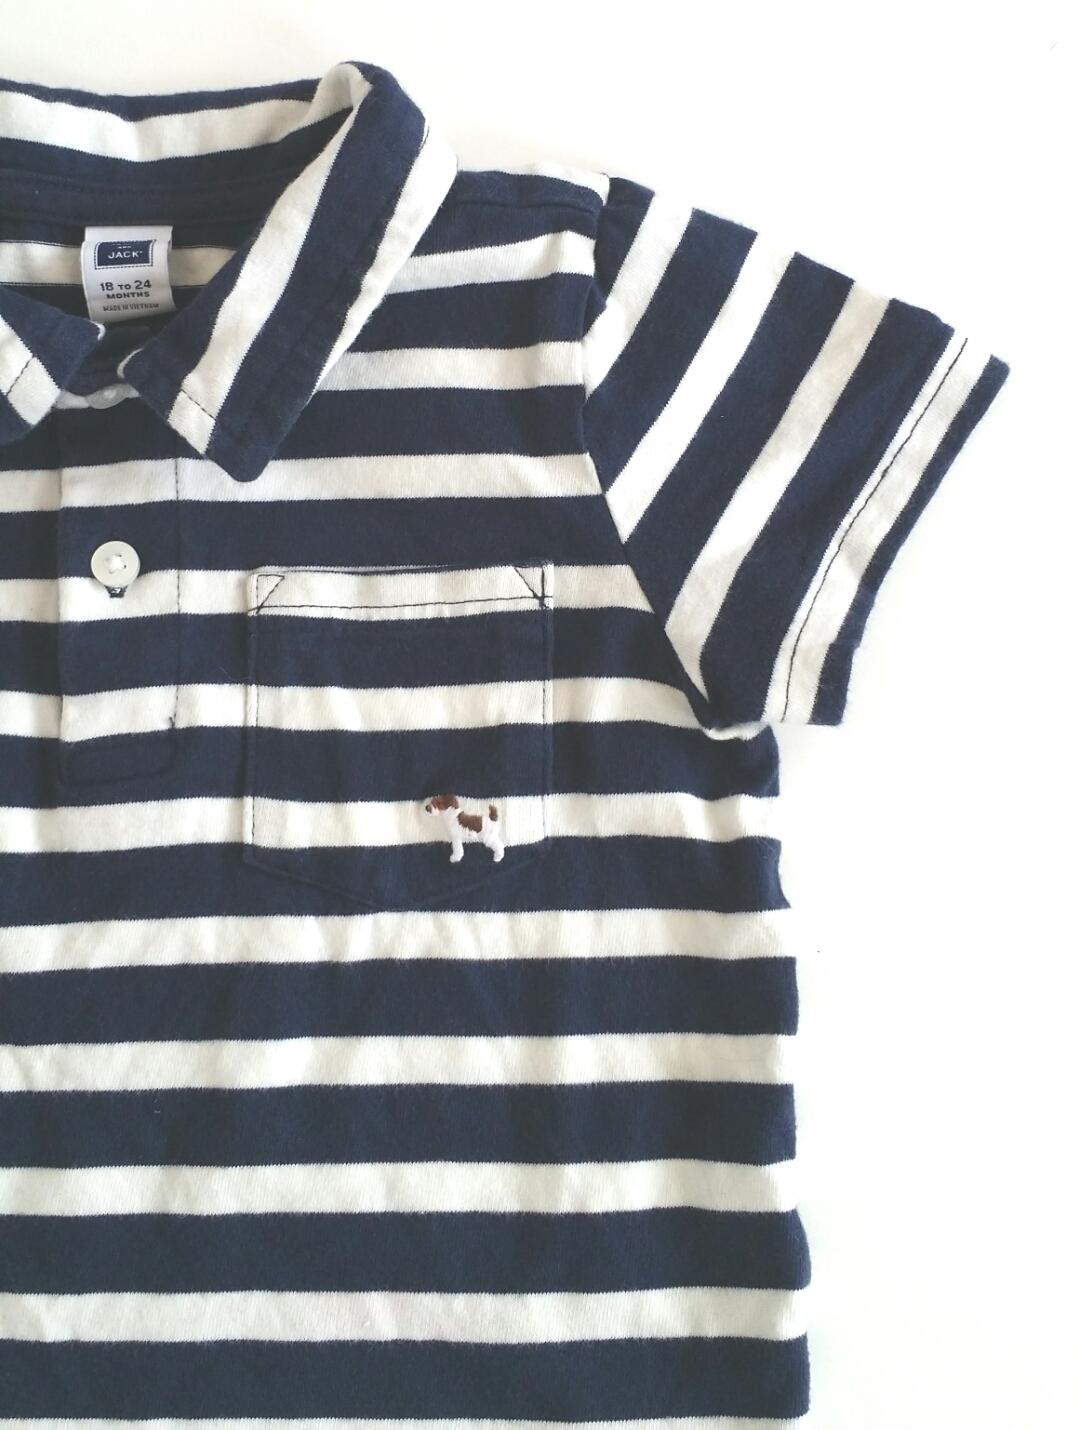 Janie--Jack-18-24-MONTHS-Striped-Shirt_2092795B.jpg